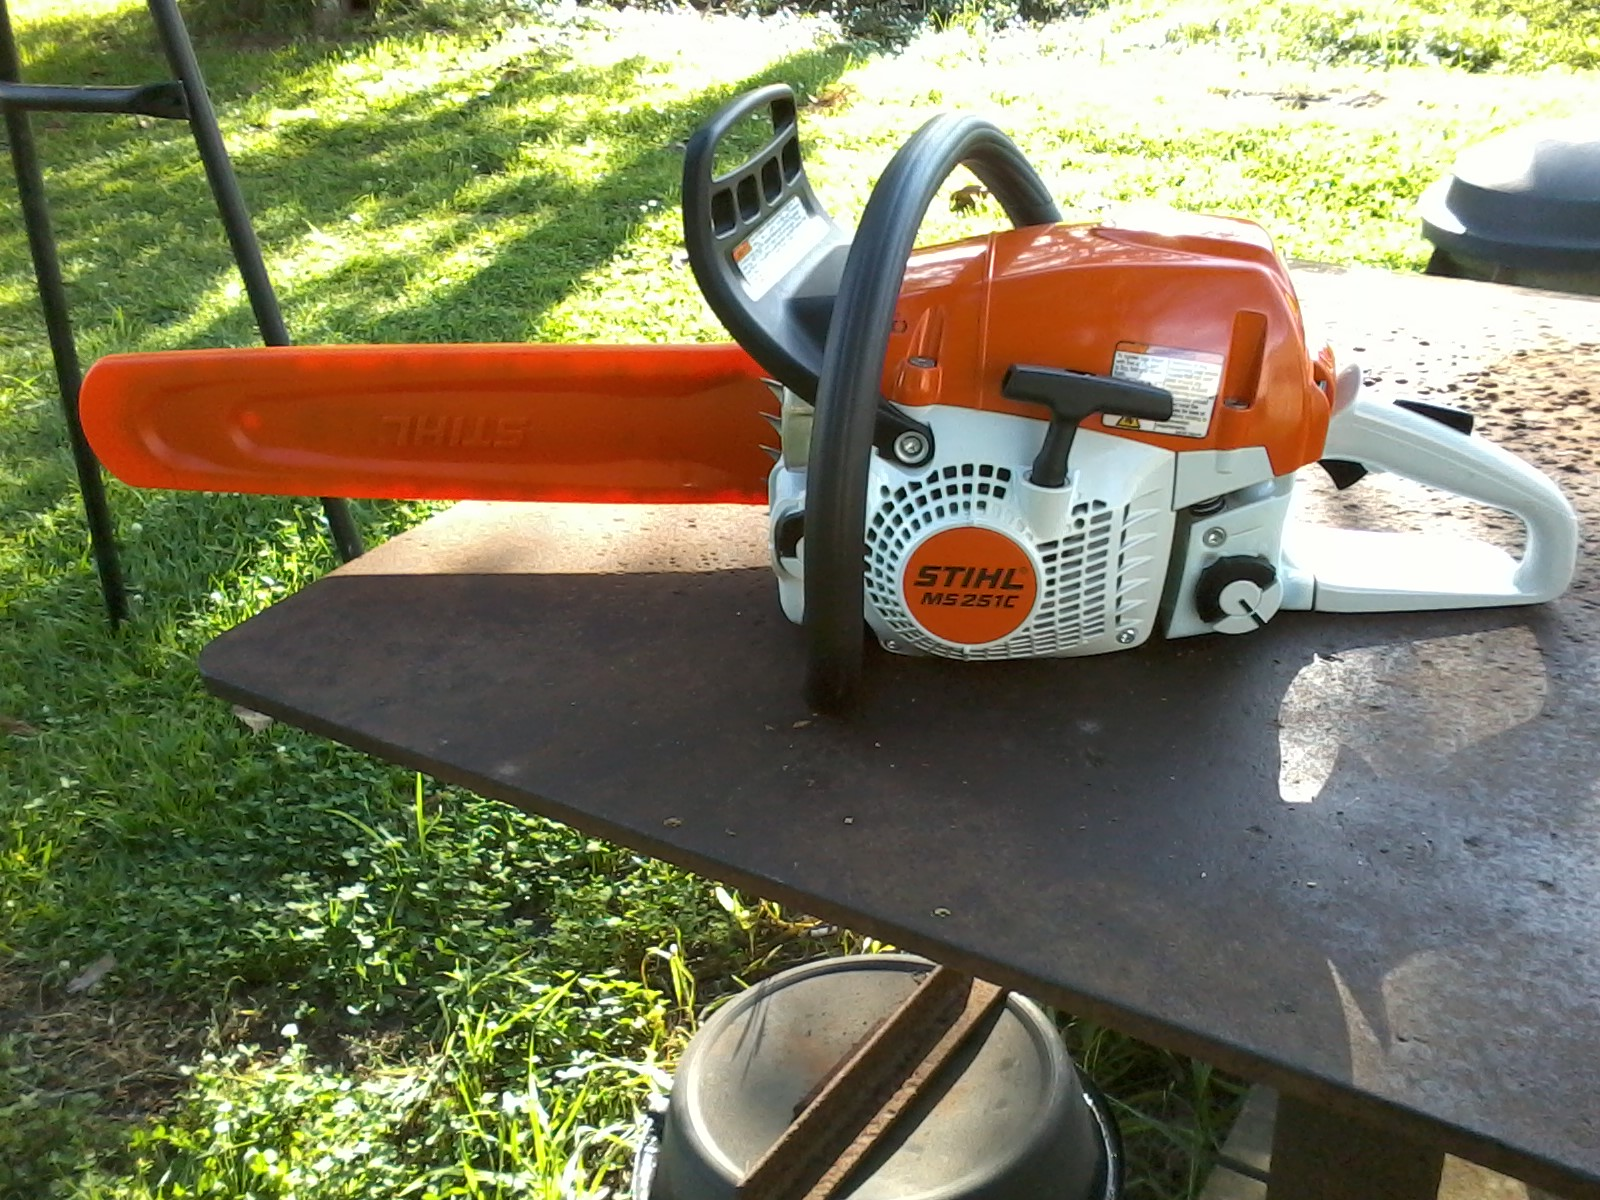 Just went bought a new STIHL MS 251 C chainsaw